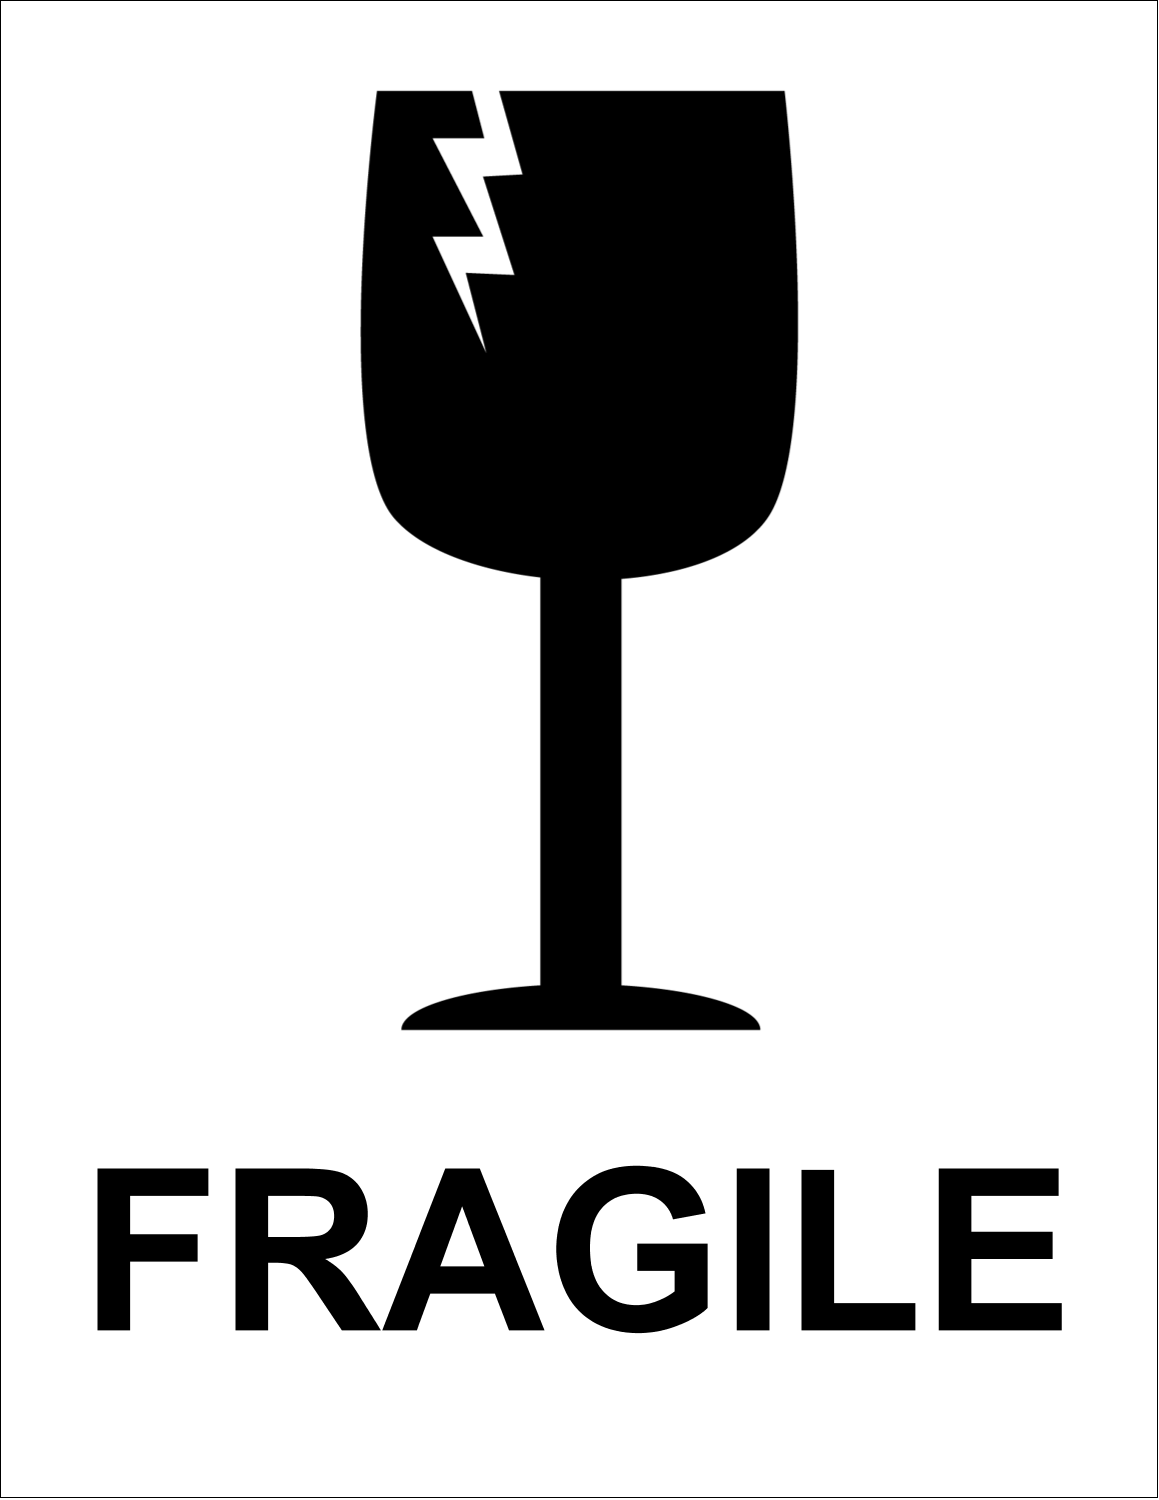 photo regarding Fragile Stickers Printable referred to as Indications Delicate Gl predesigned template for your future